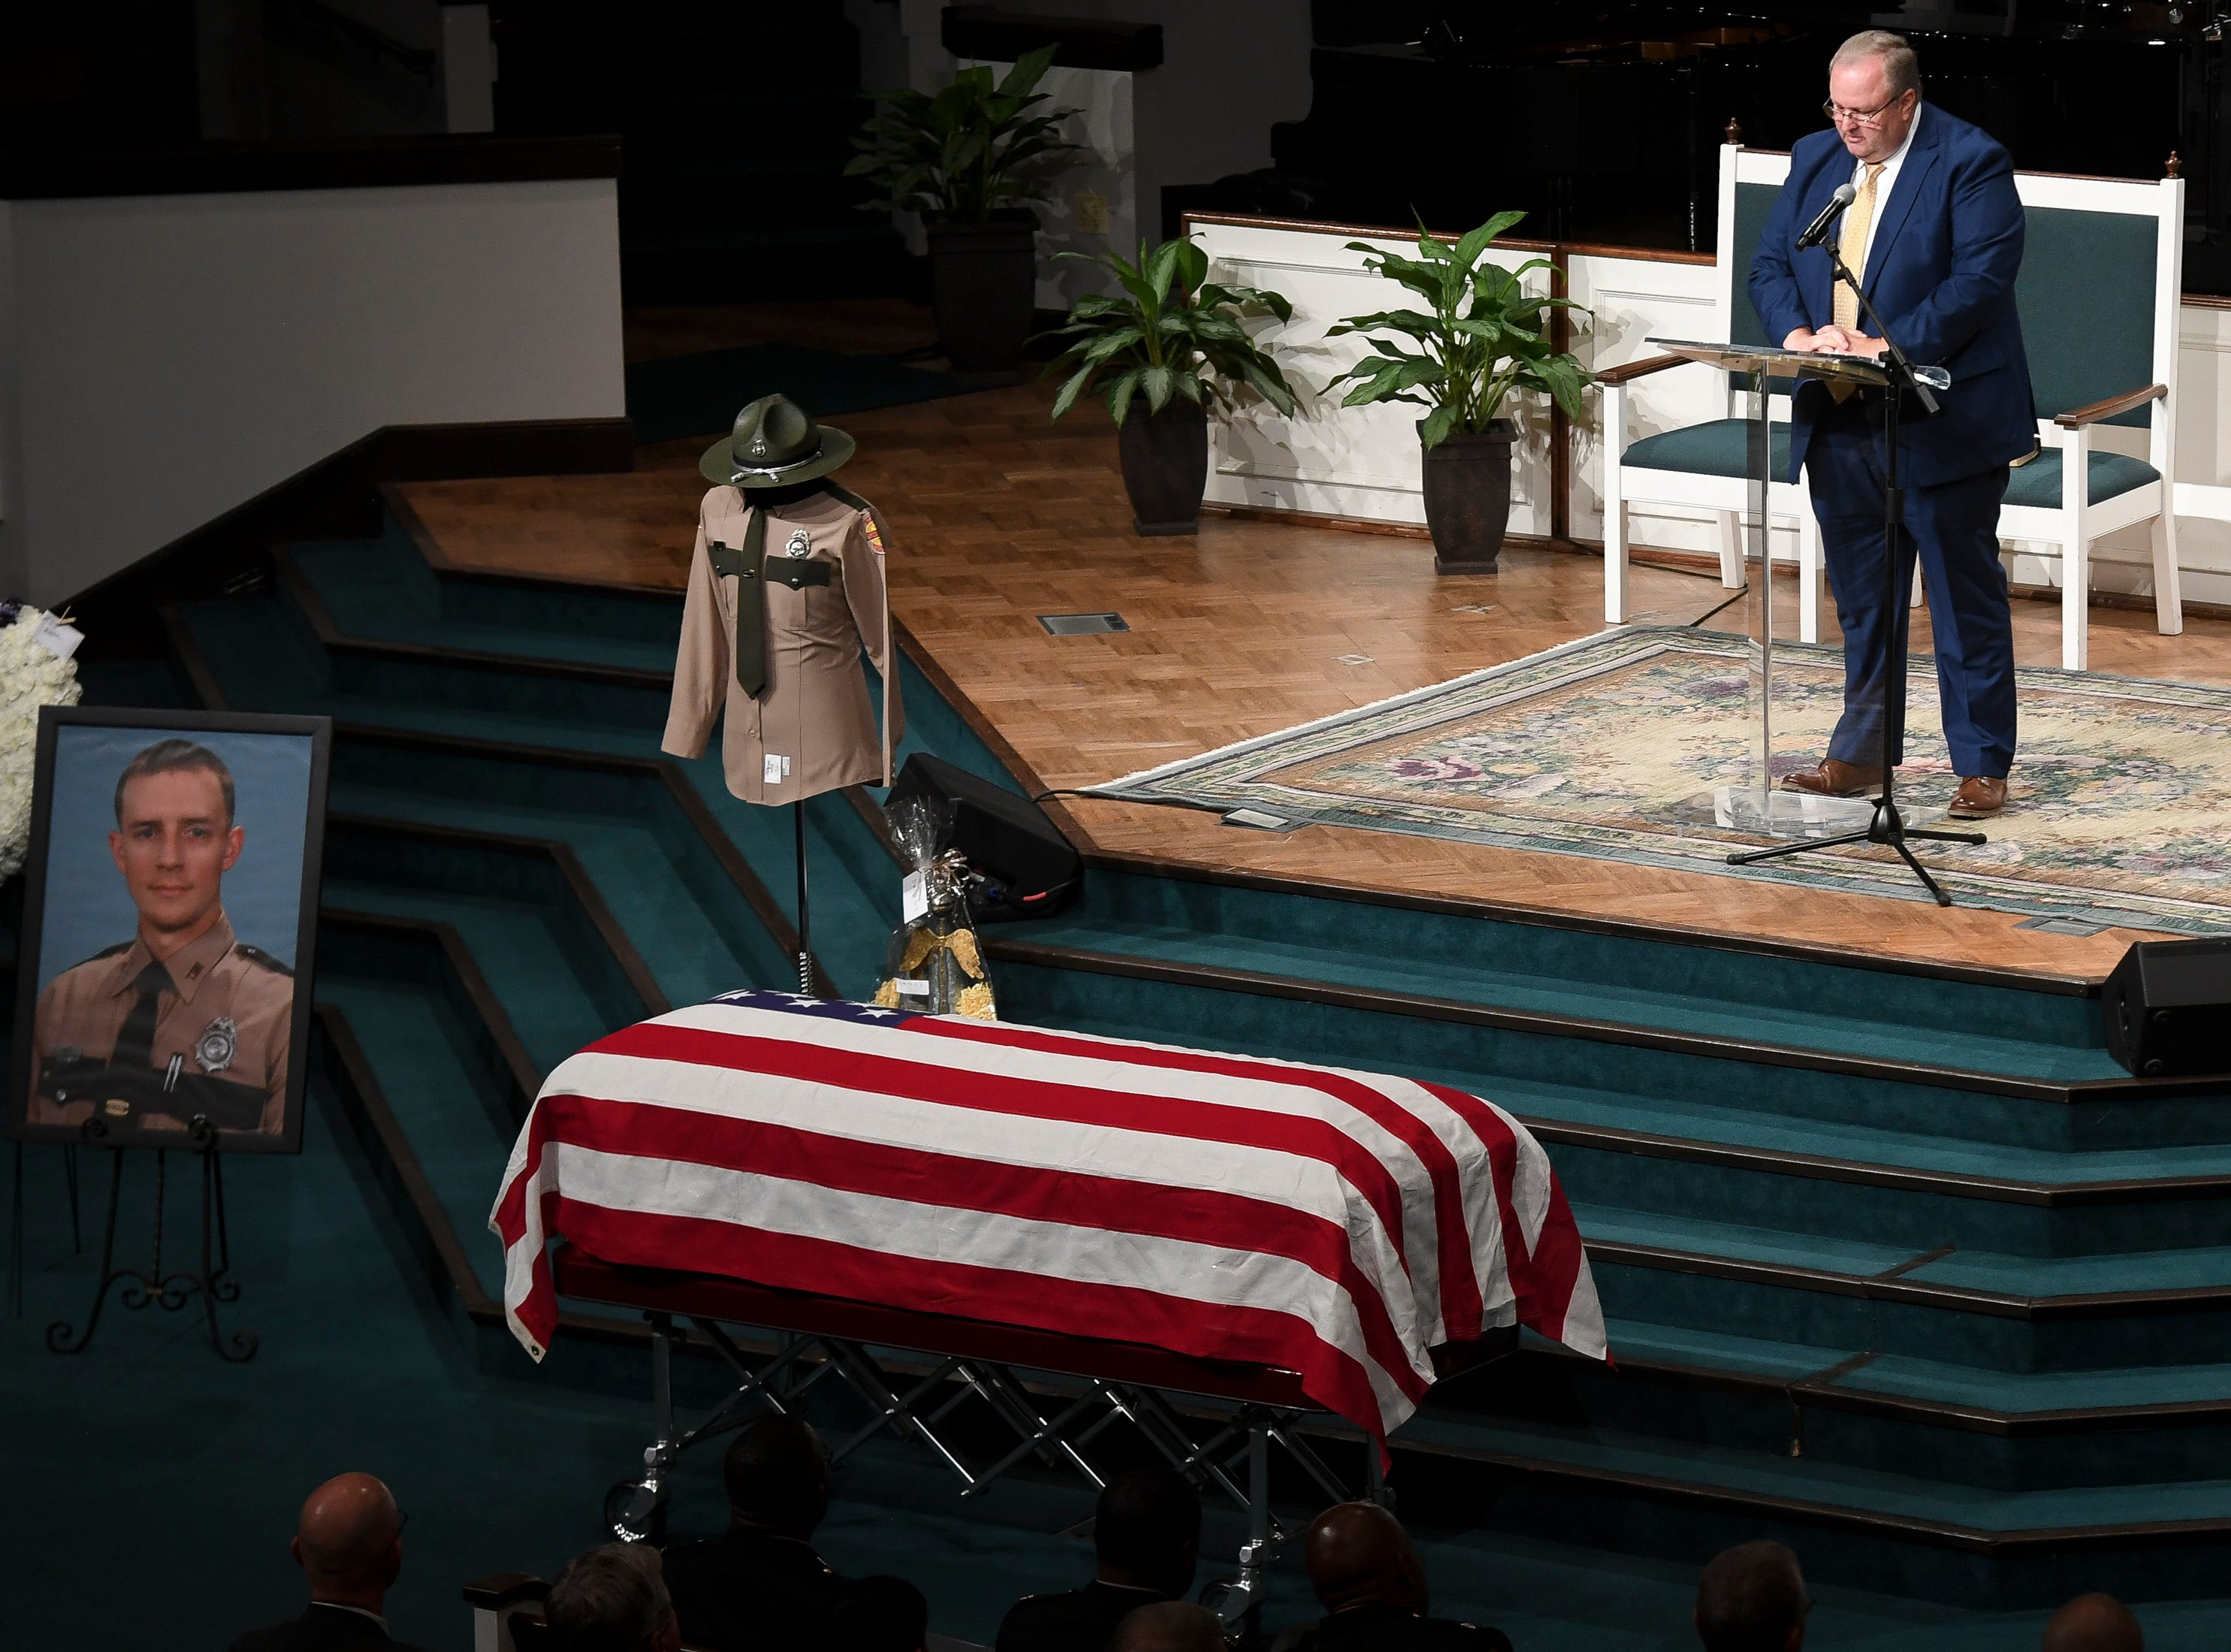 Rev. Wade Cash reads the obituary during the funeral service for Tennessee State Trooper Matthew Gatti at West Jackson Baptist Church in Jackson, Tenn., Monday, May 13, 2019. Gatti died in the line of duty in an accident while responding to a car fire on I-40 in Madison County on May 6.